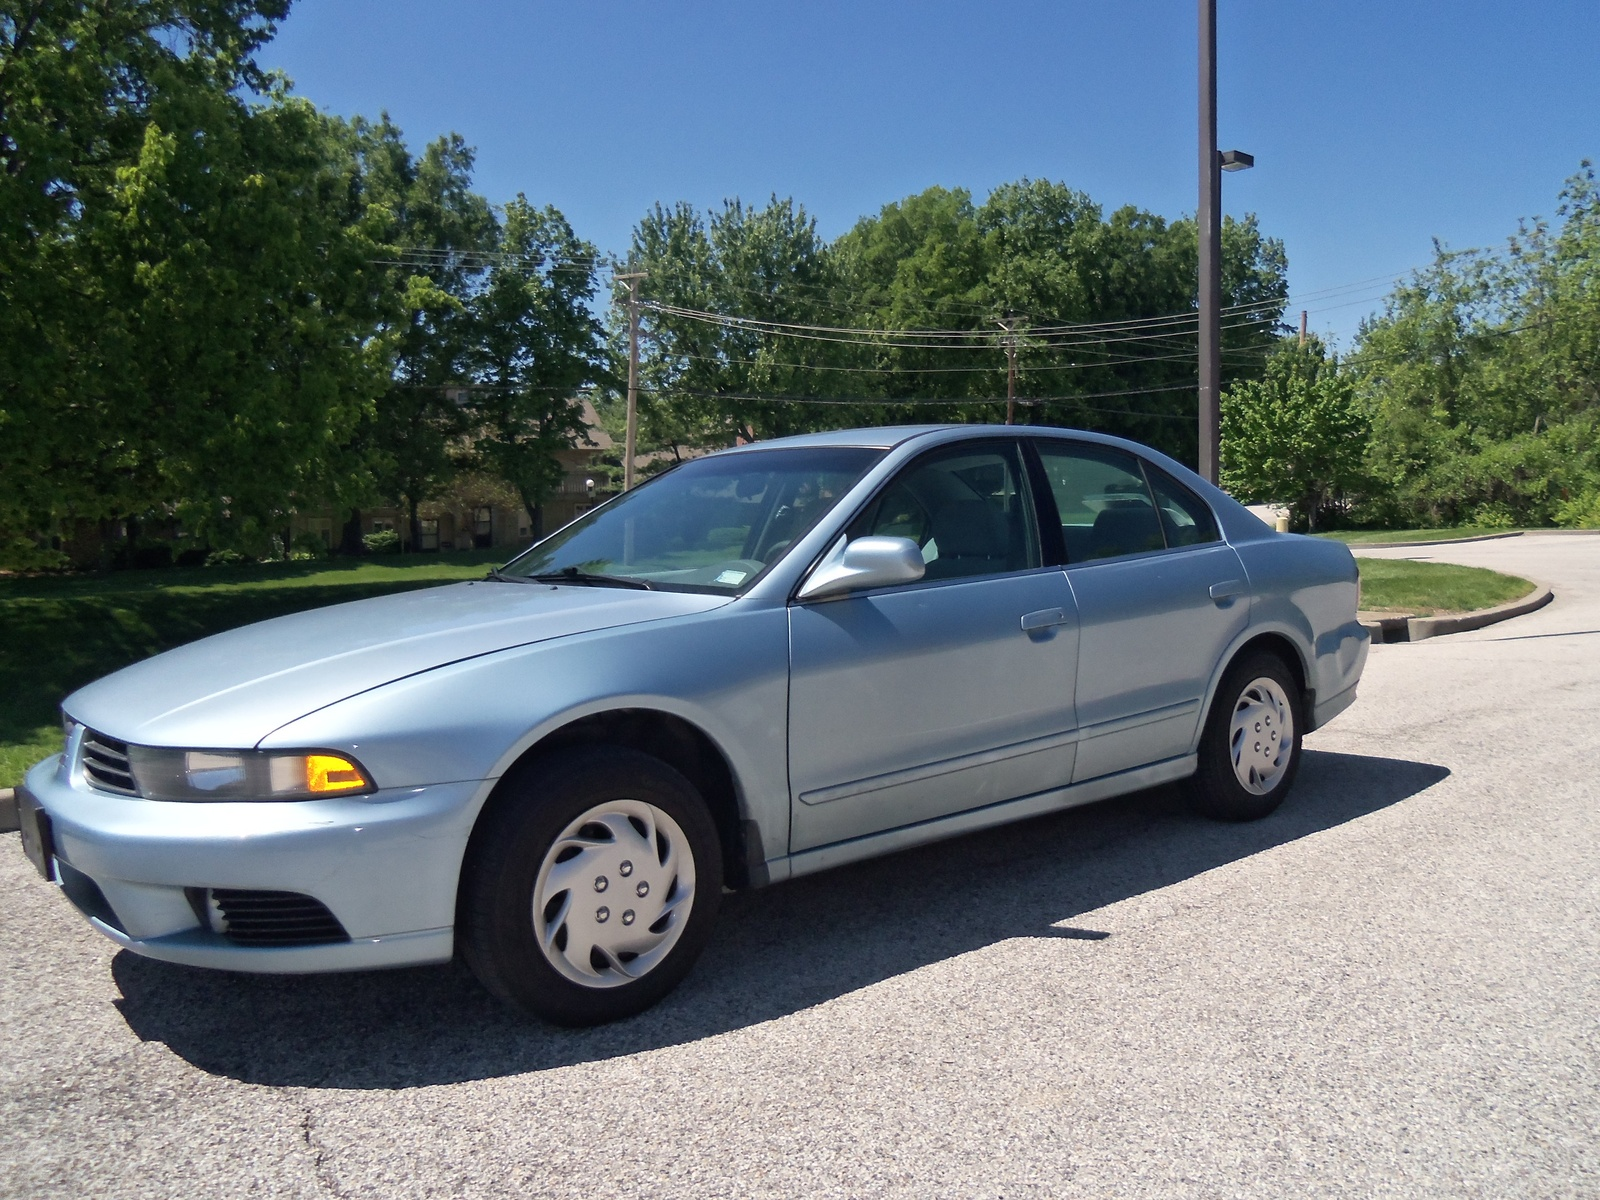 2003 Mitsubishi Galant ES submited images   Pic2Fly